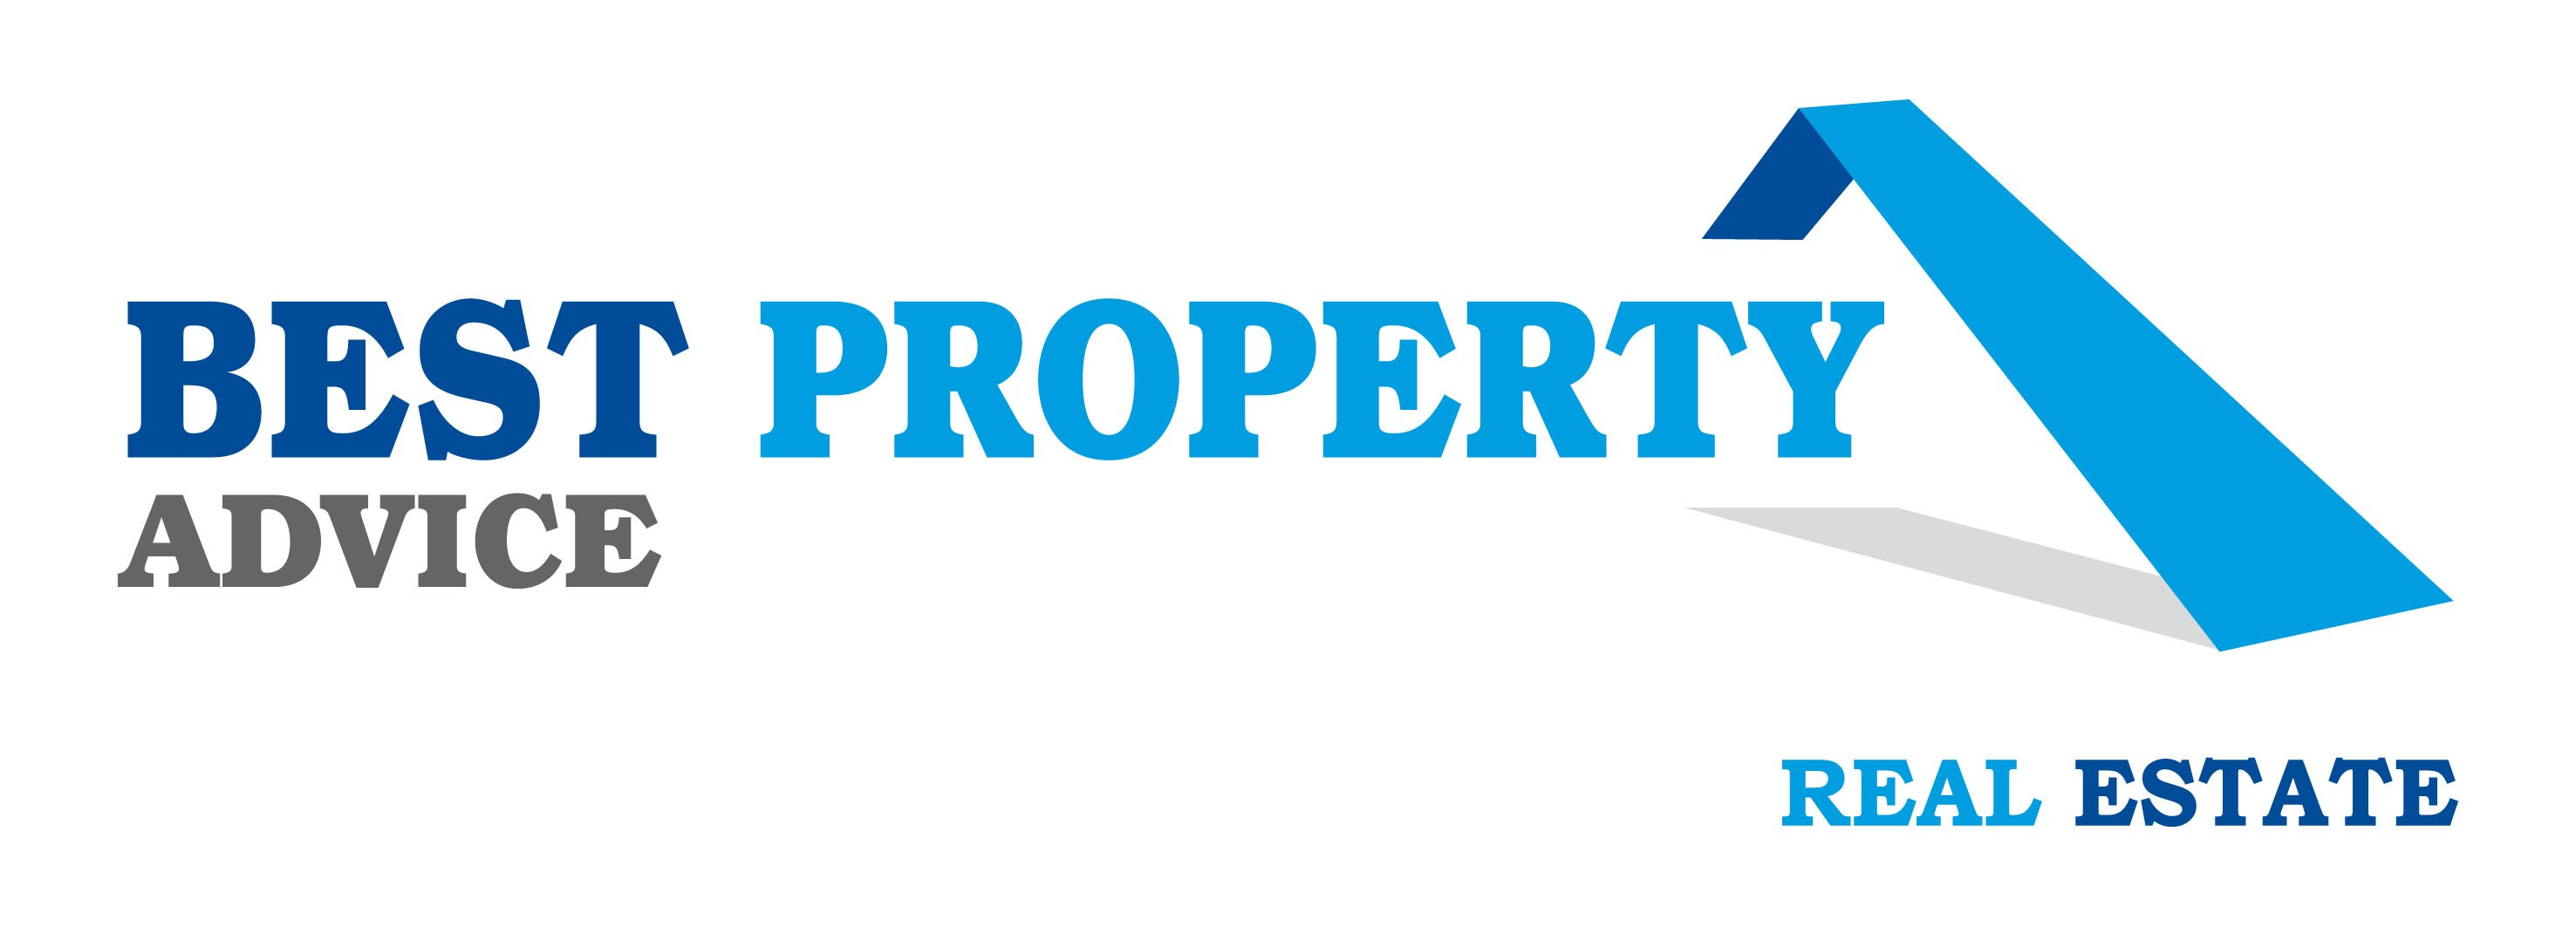 BEST PROPERTY ADVICE logo